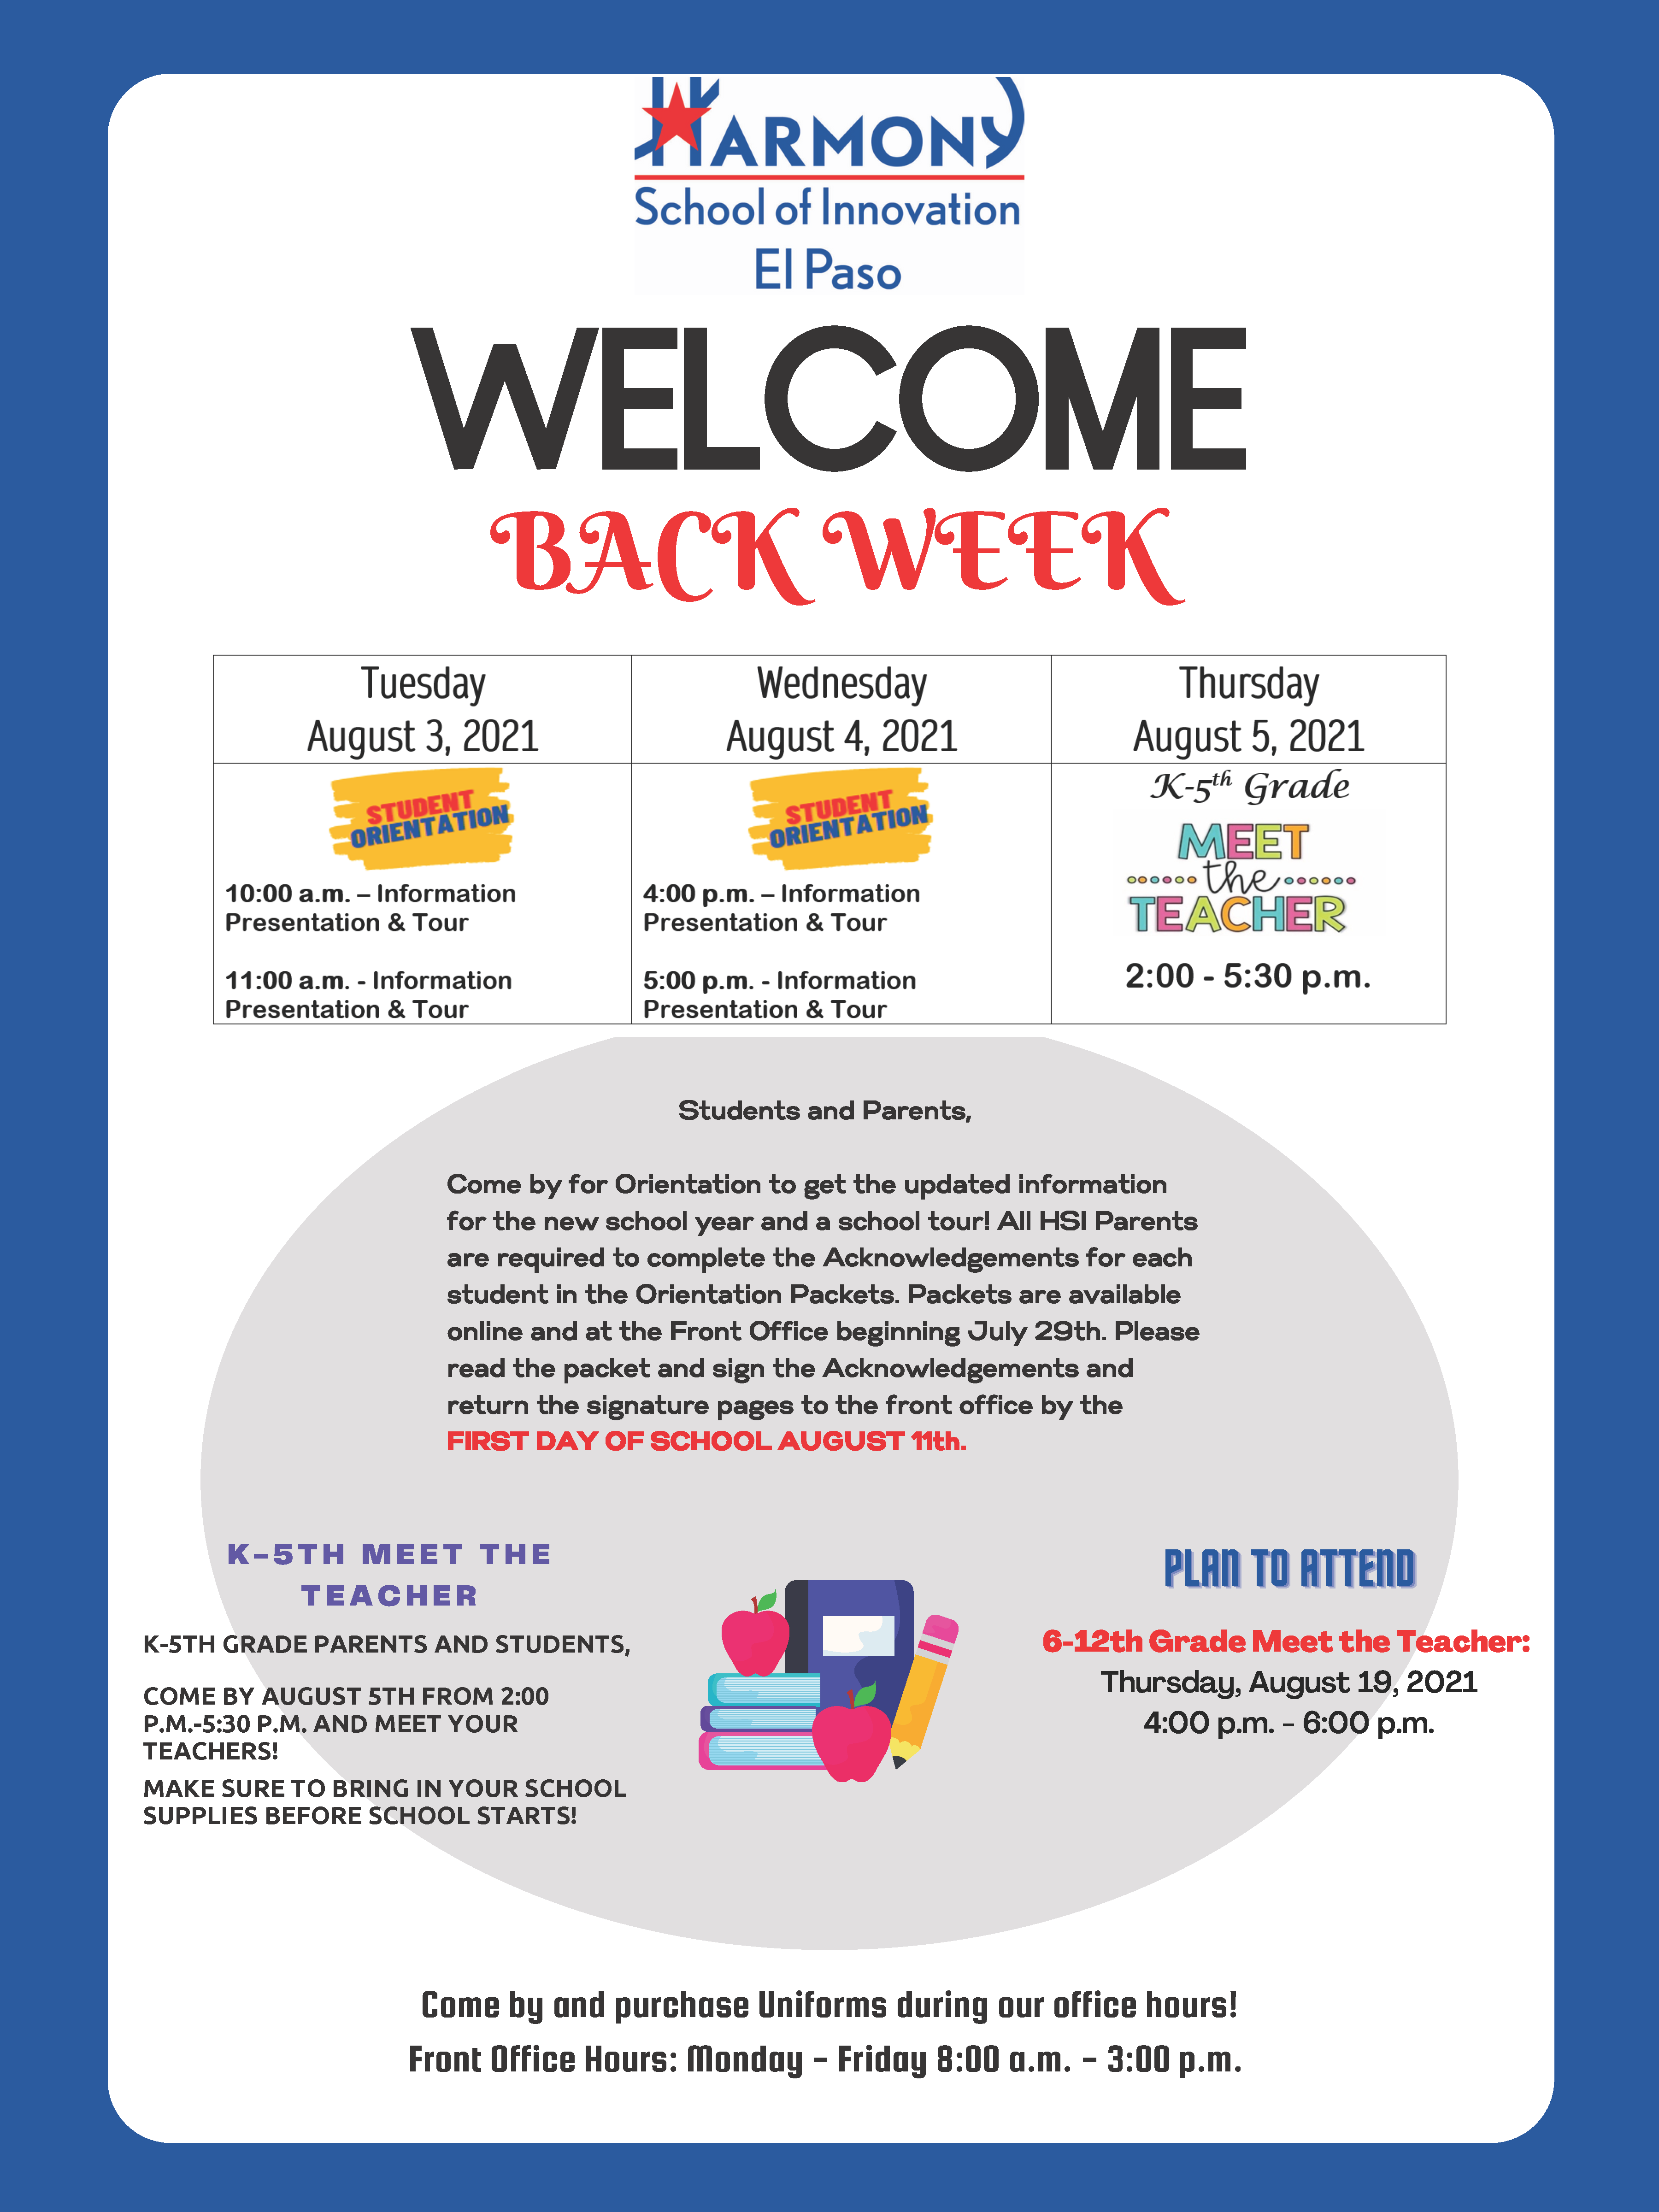 An image of the Welcome Back Week Orientation flyer